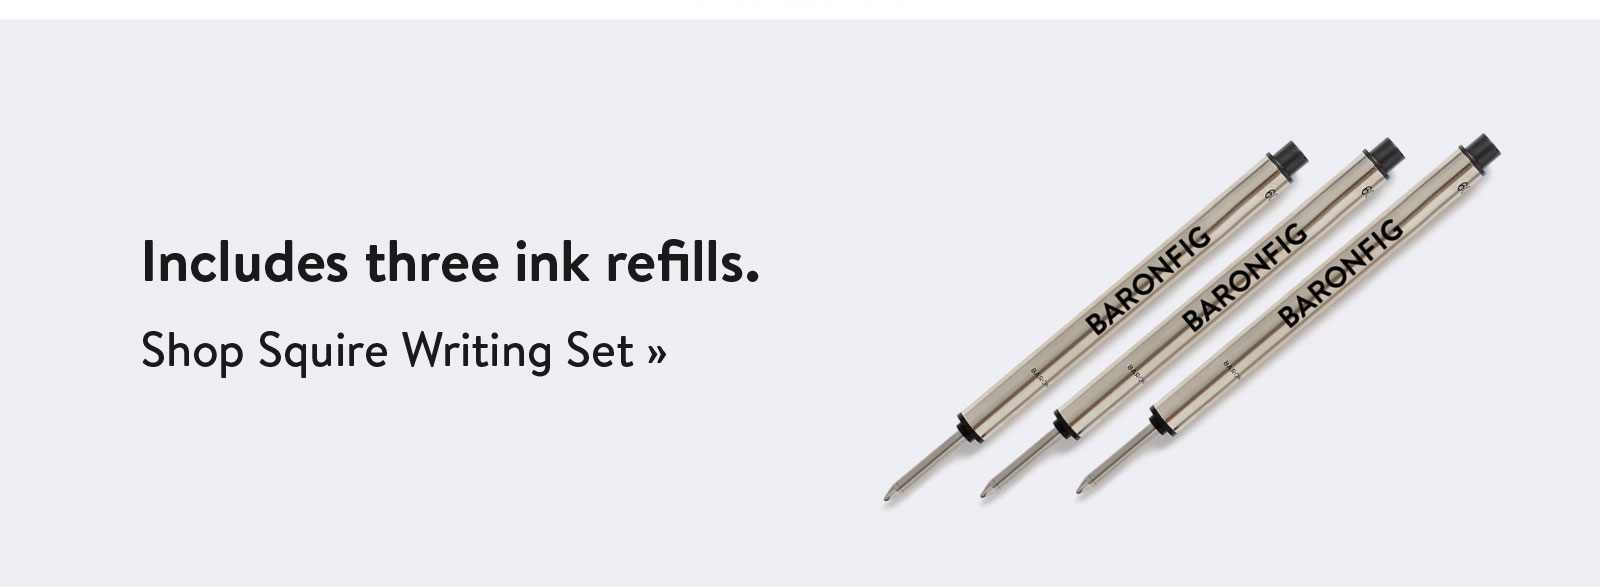 Includes three ink refills. Shop Squire Writing Set ?